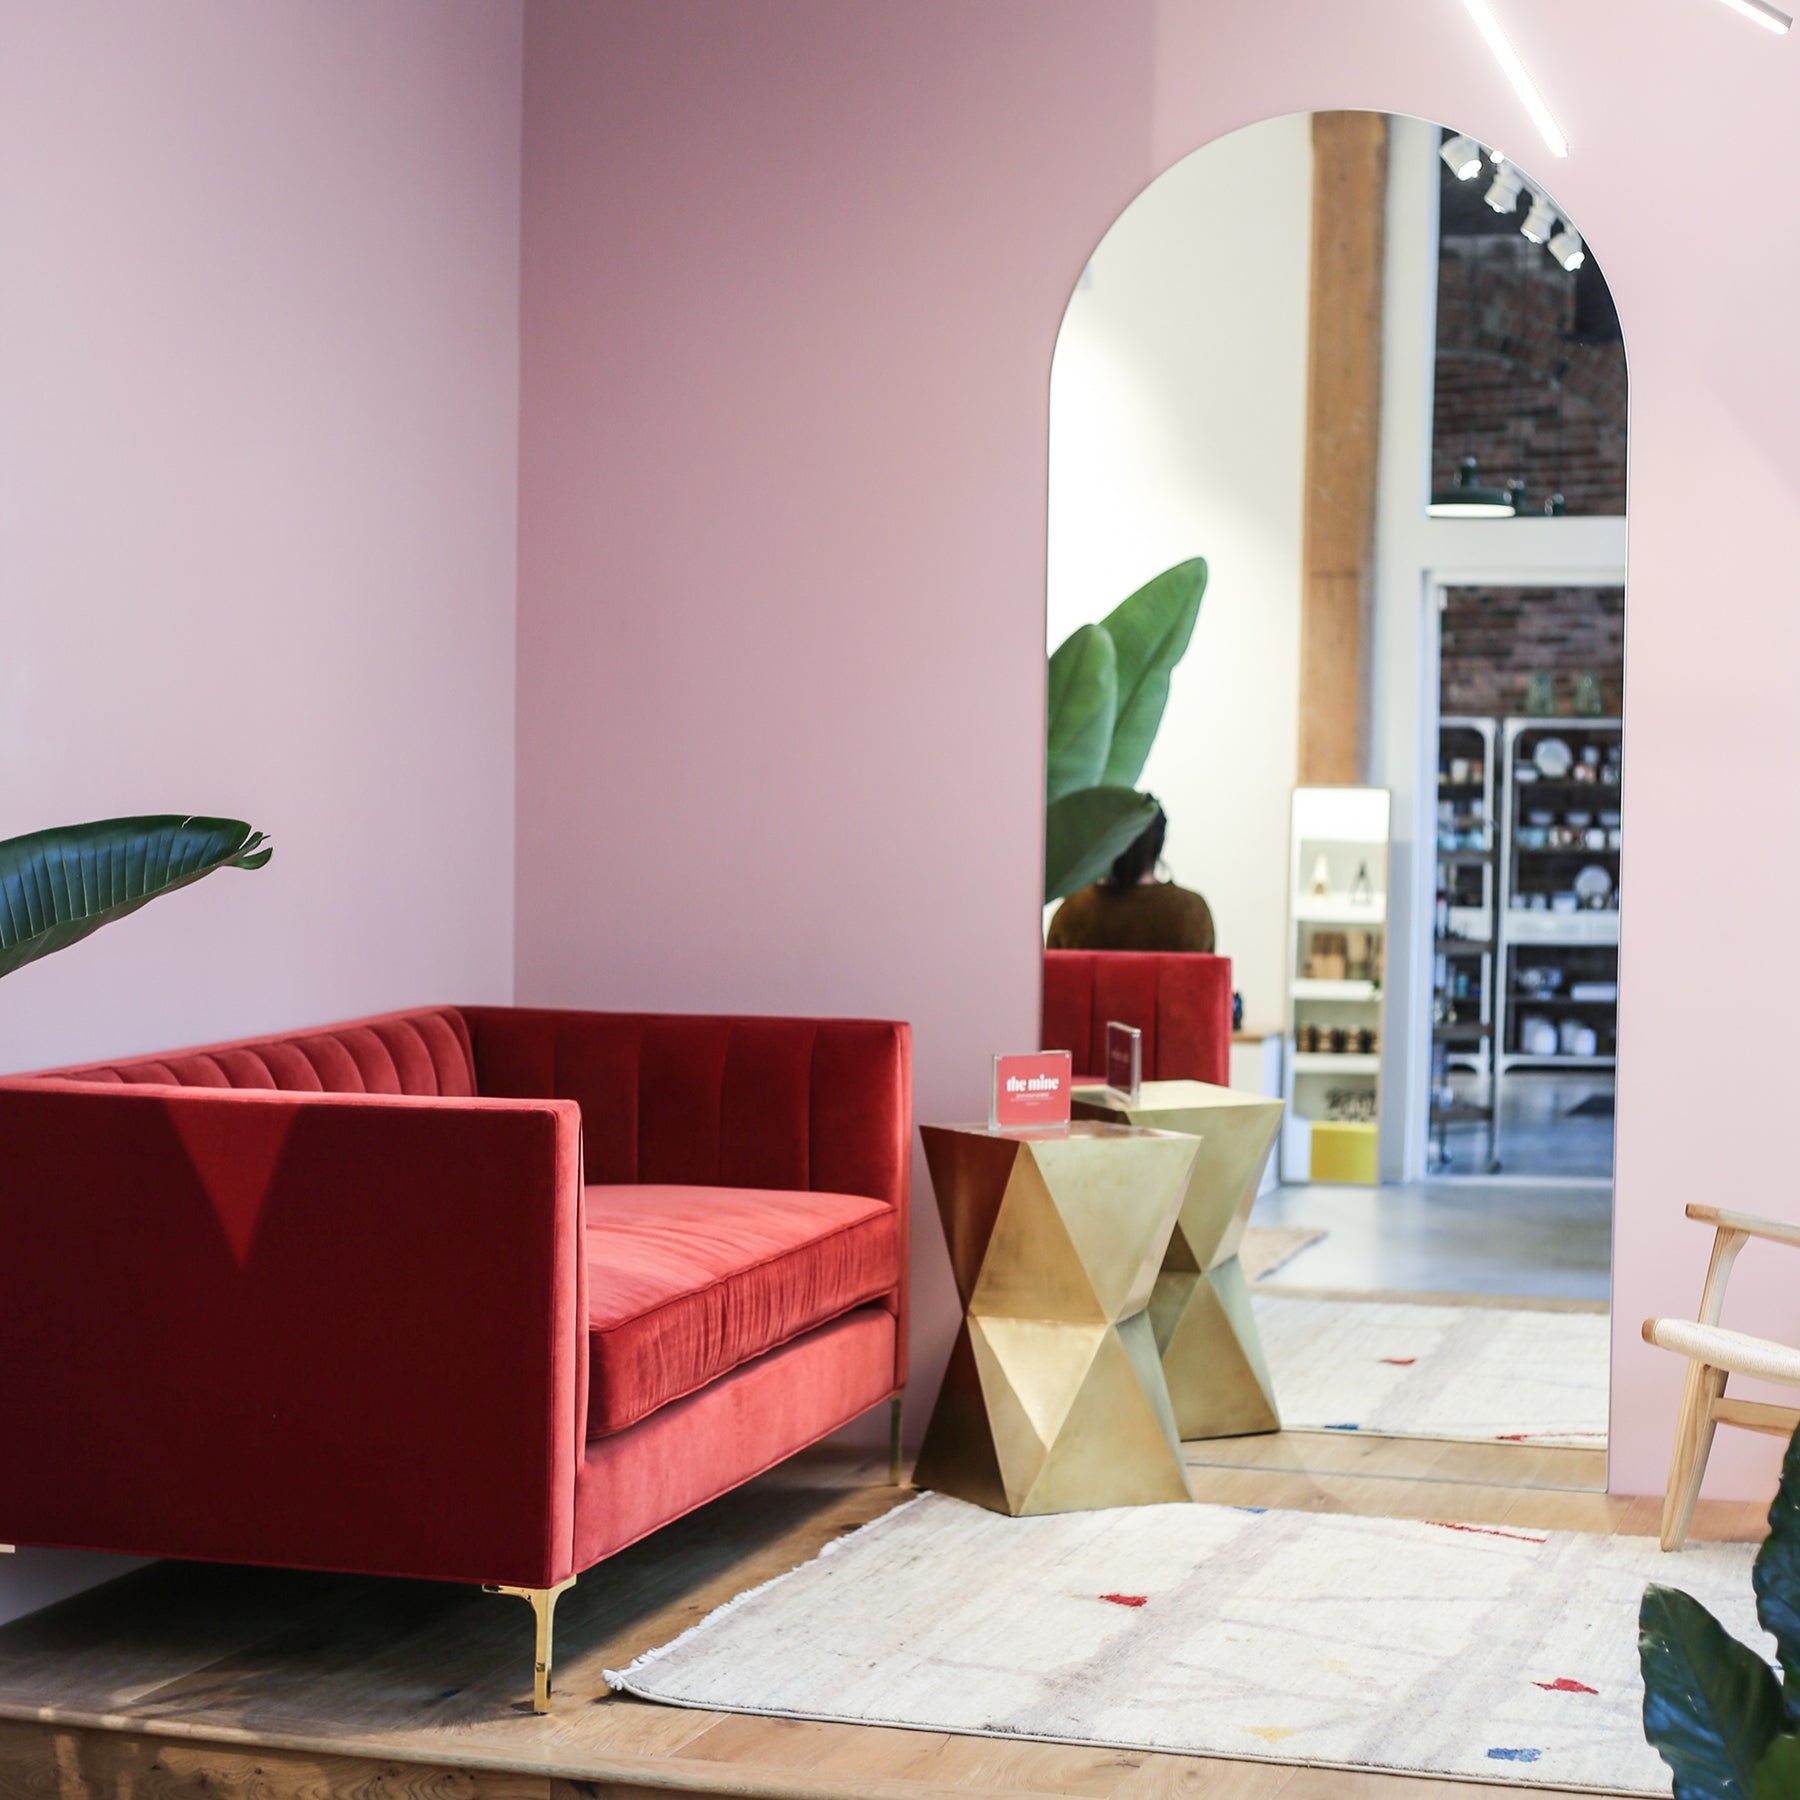 Interior of a store with pink walls and a red couch